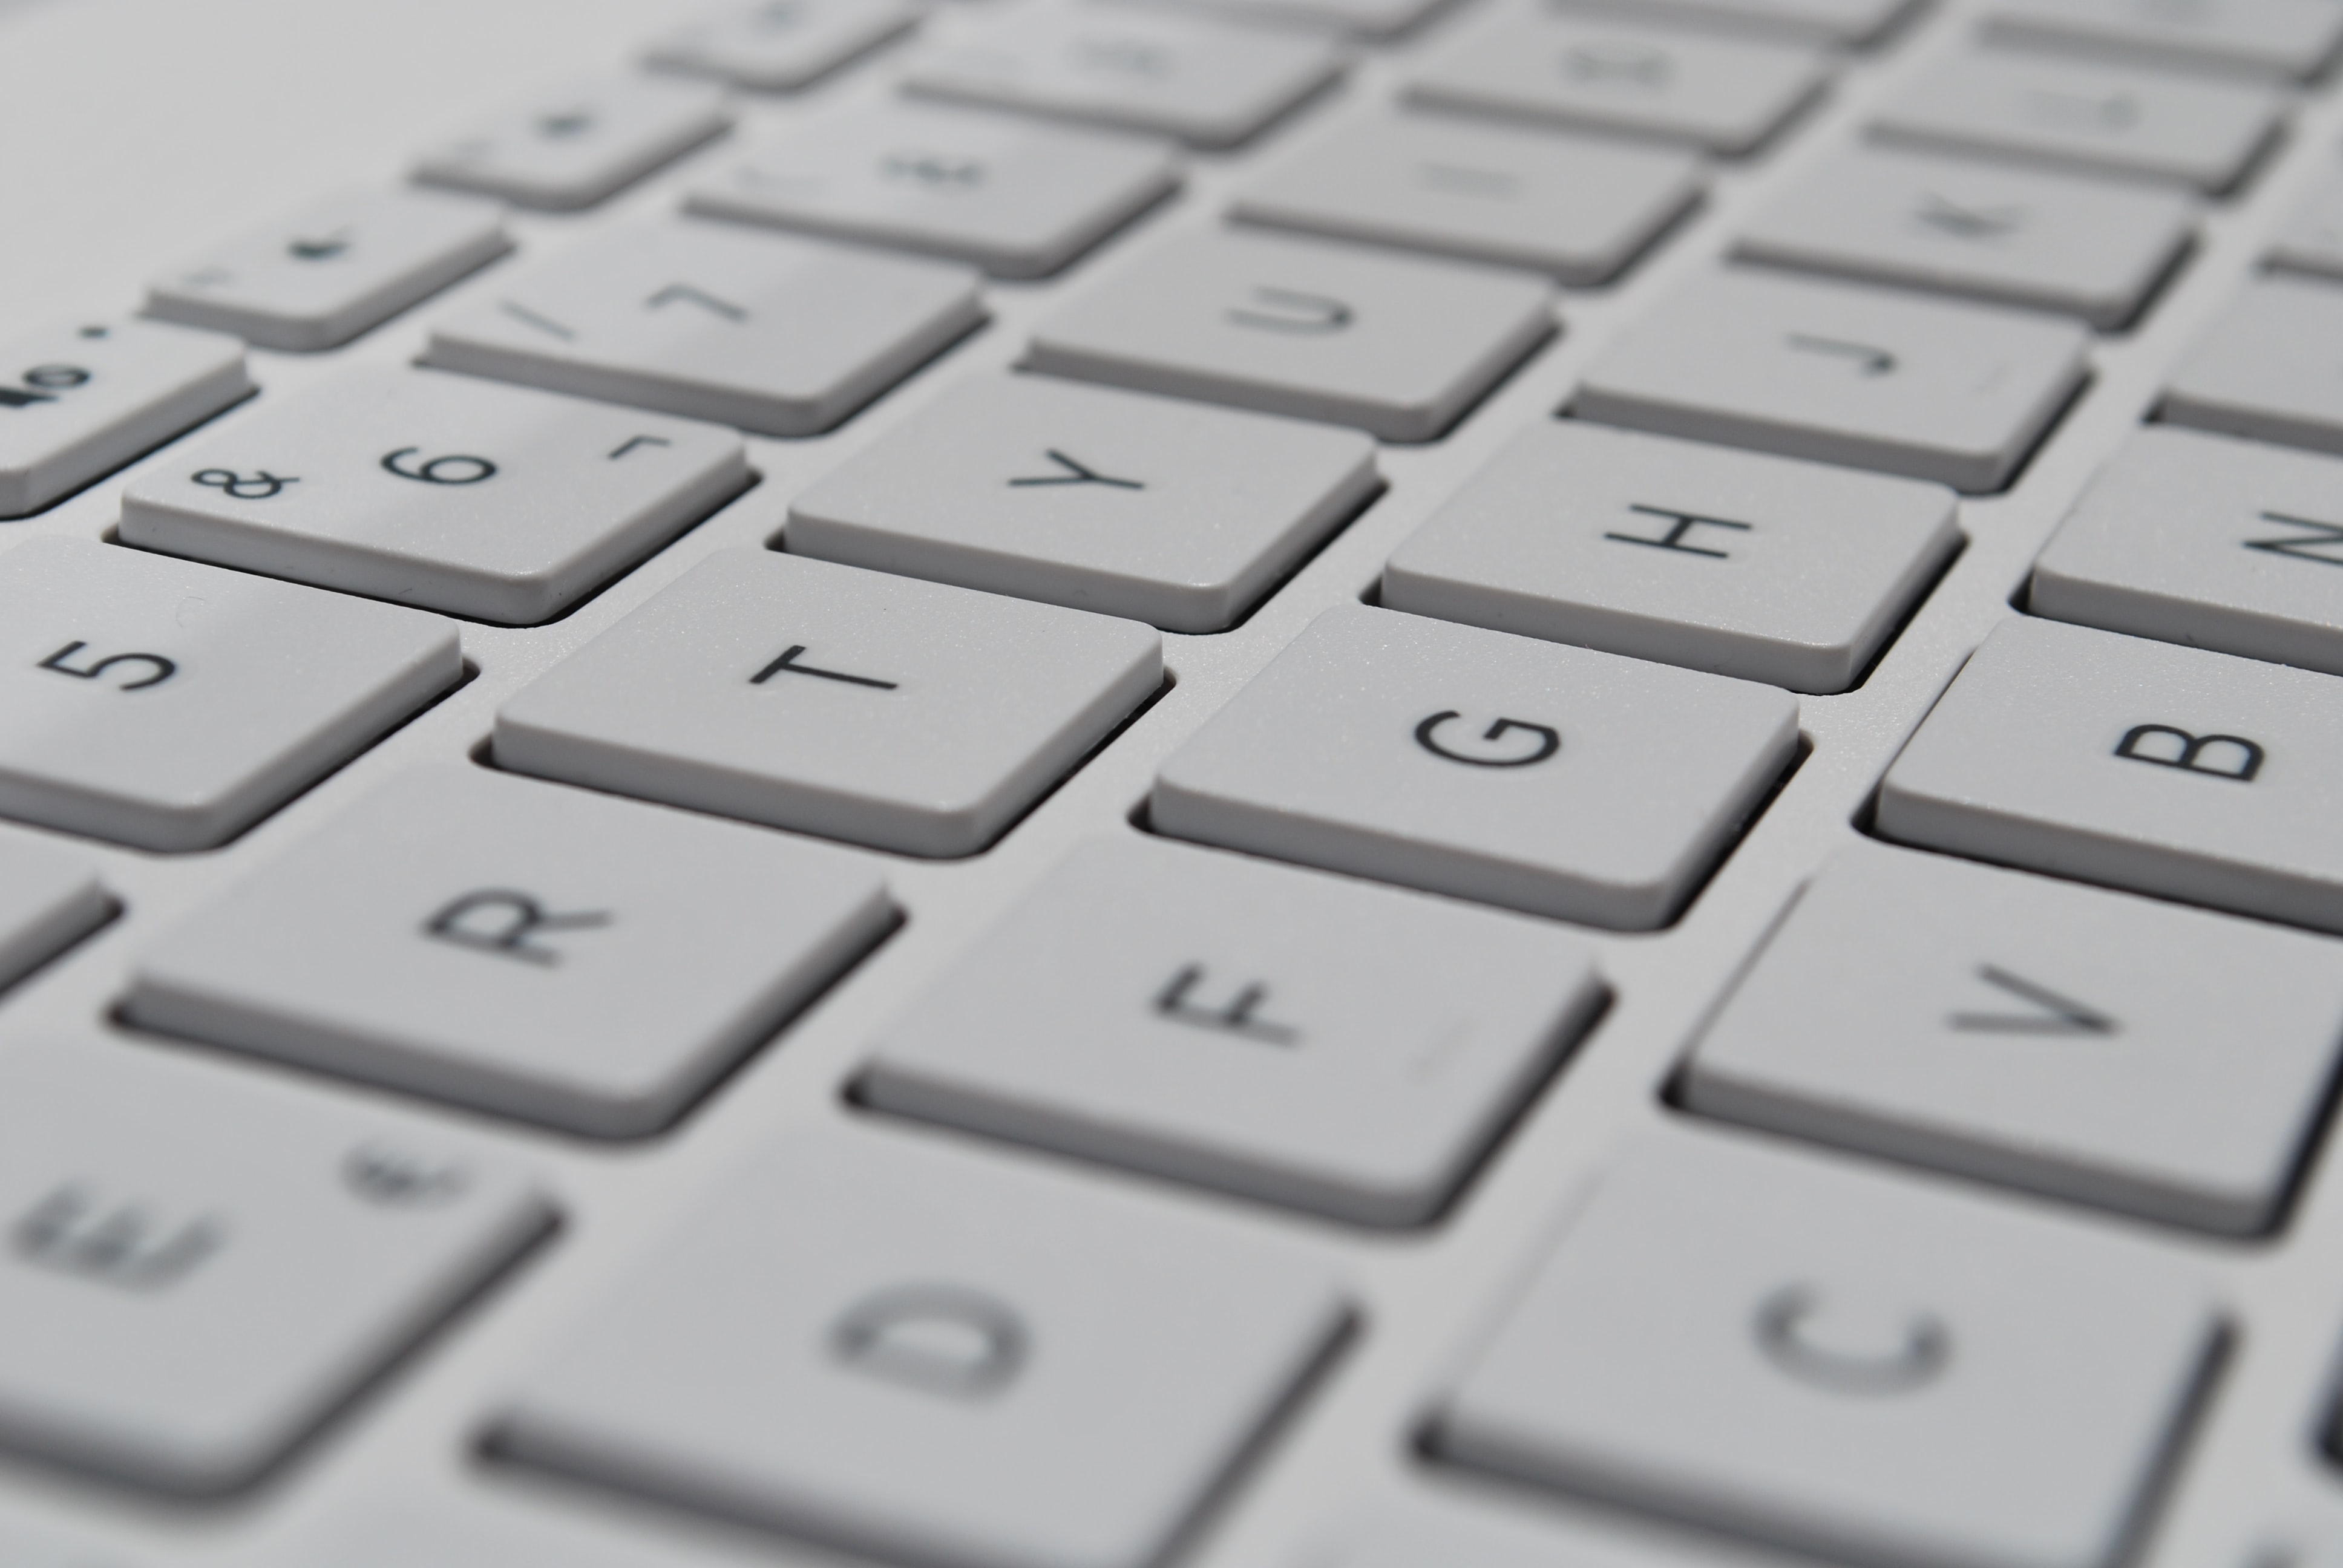 Courage Takes More Than a Keyboard: Christian Nerve in a Digital Age